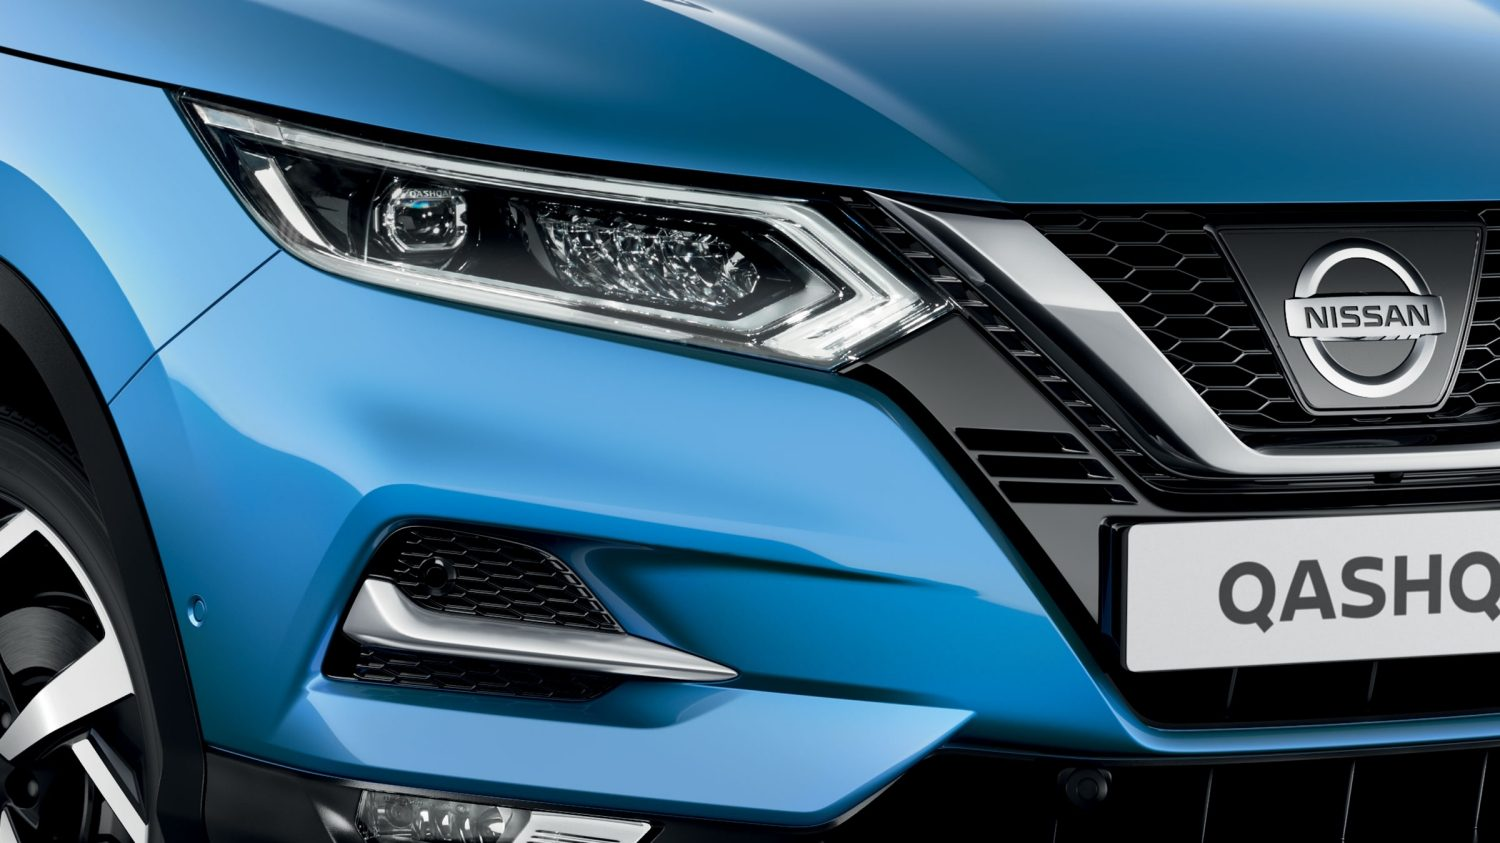 Finishing touches - de nieuwe Nissan QASHQAI